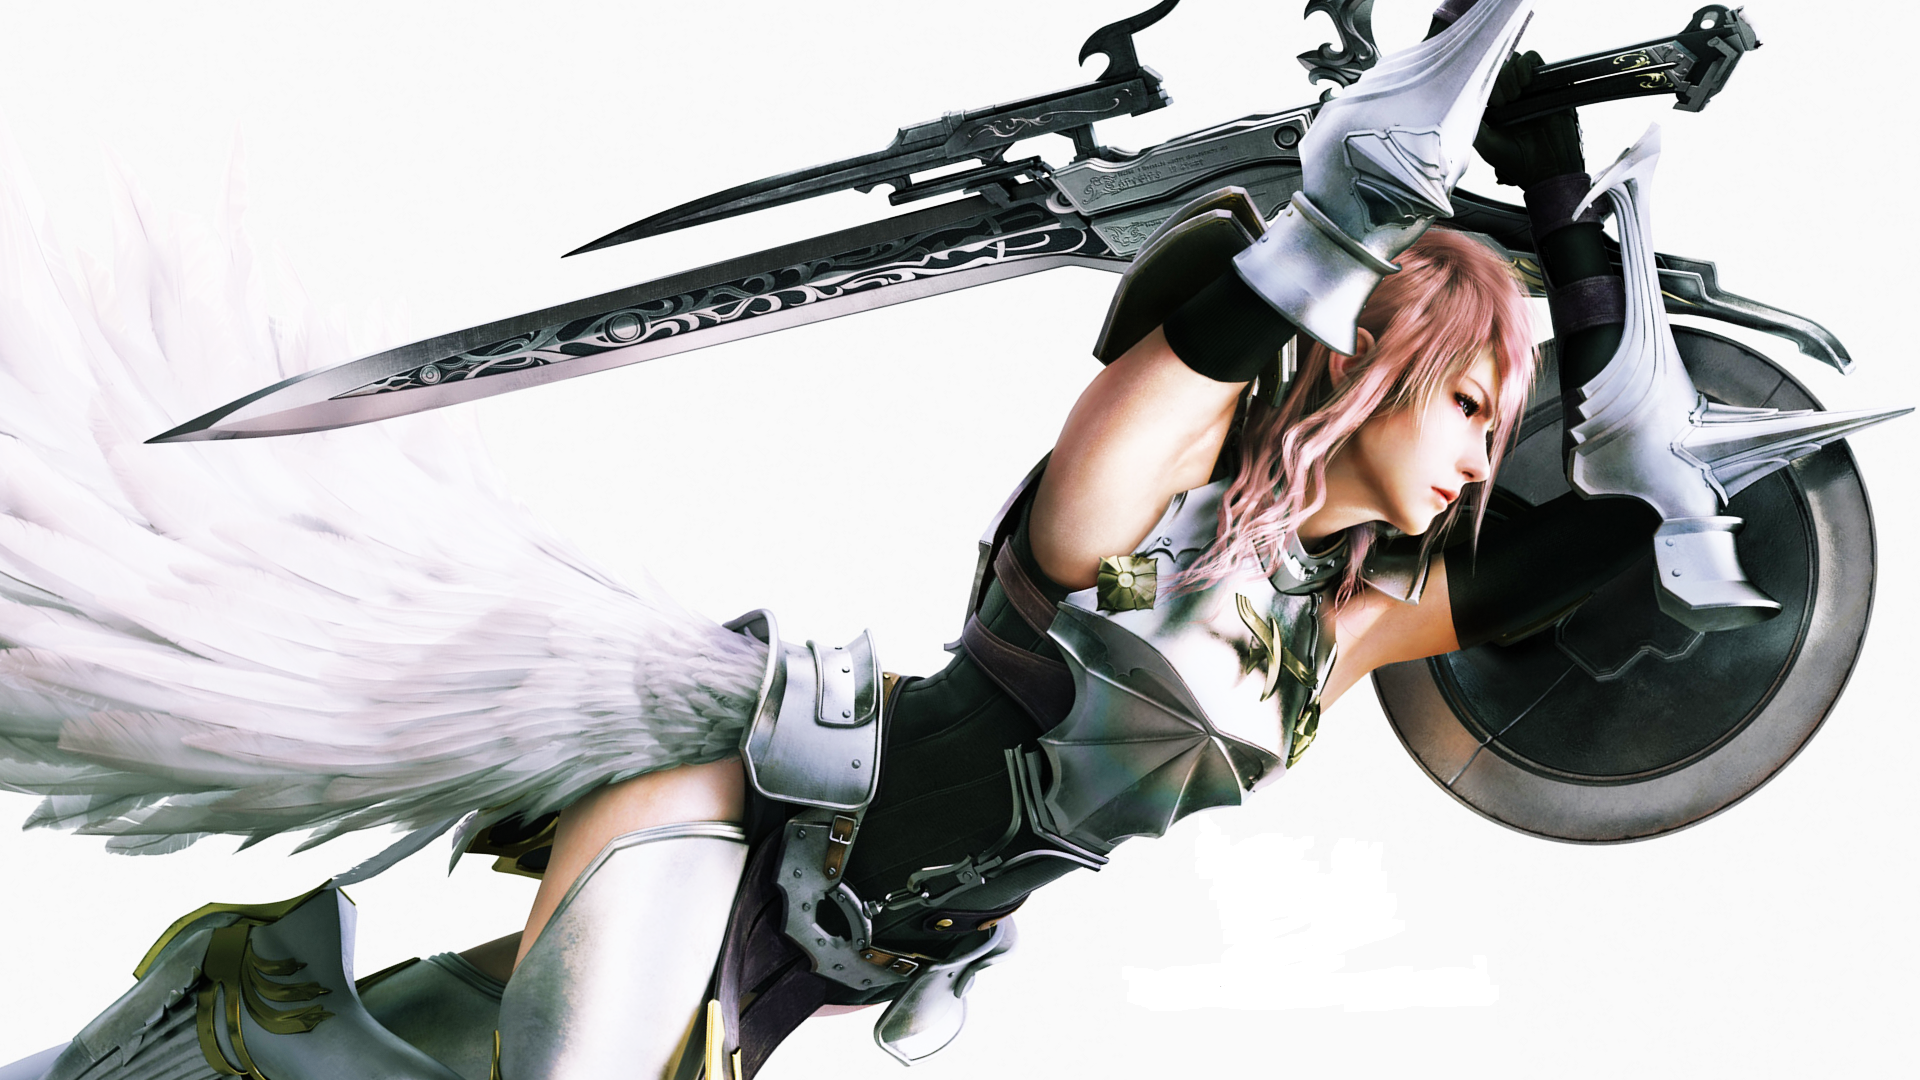 final_fantasy_xiii_2_review.png